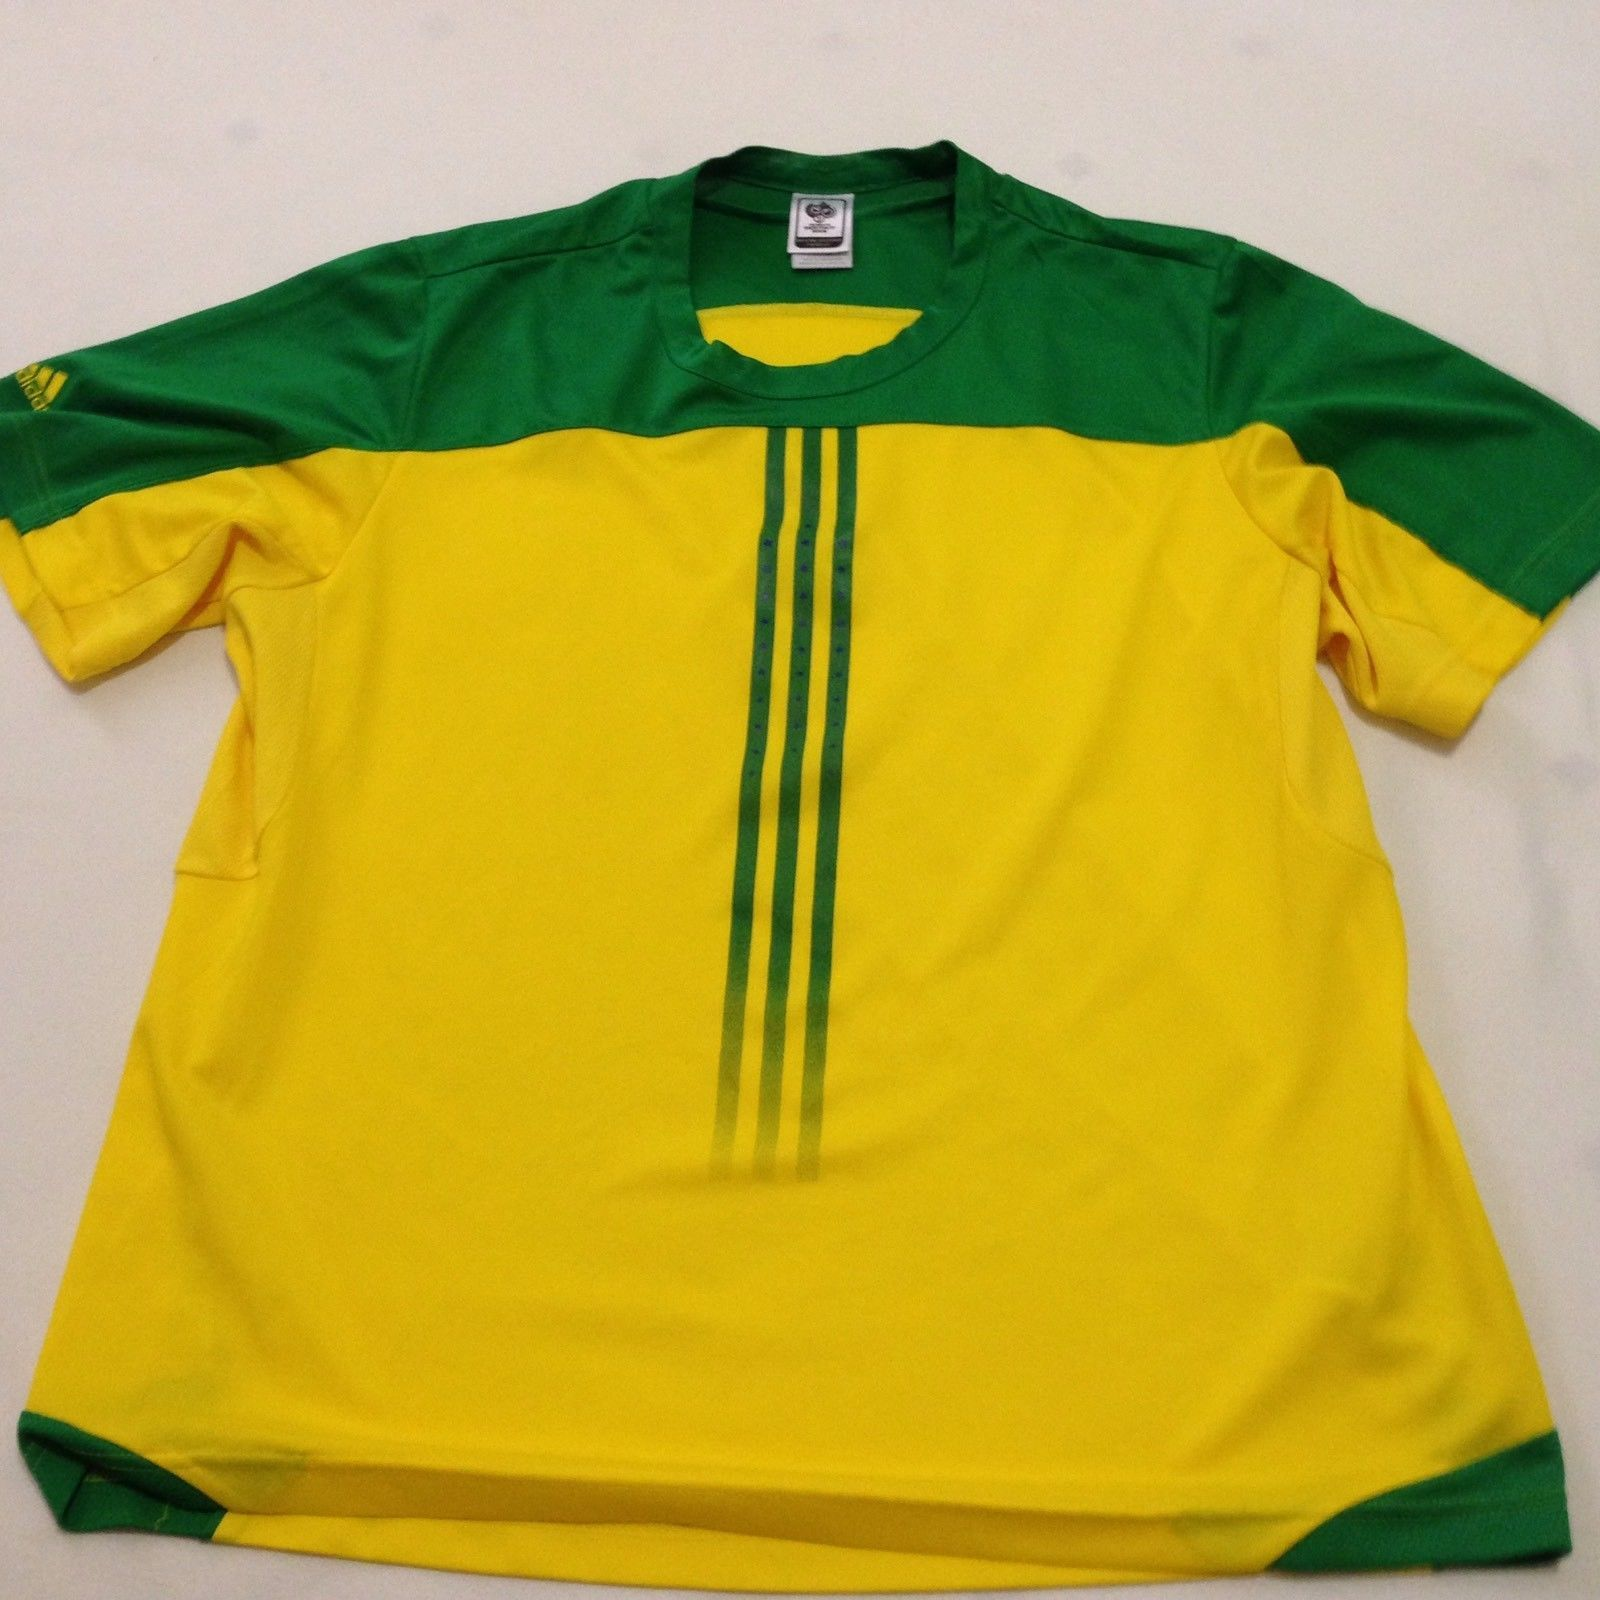 Brasil Adidas T-Shirt Germany World Cup 2006 and 50 similar items 59243f0d4